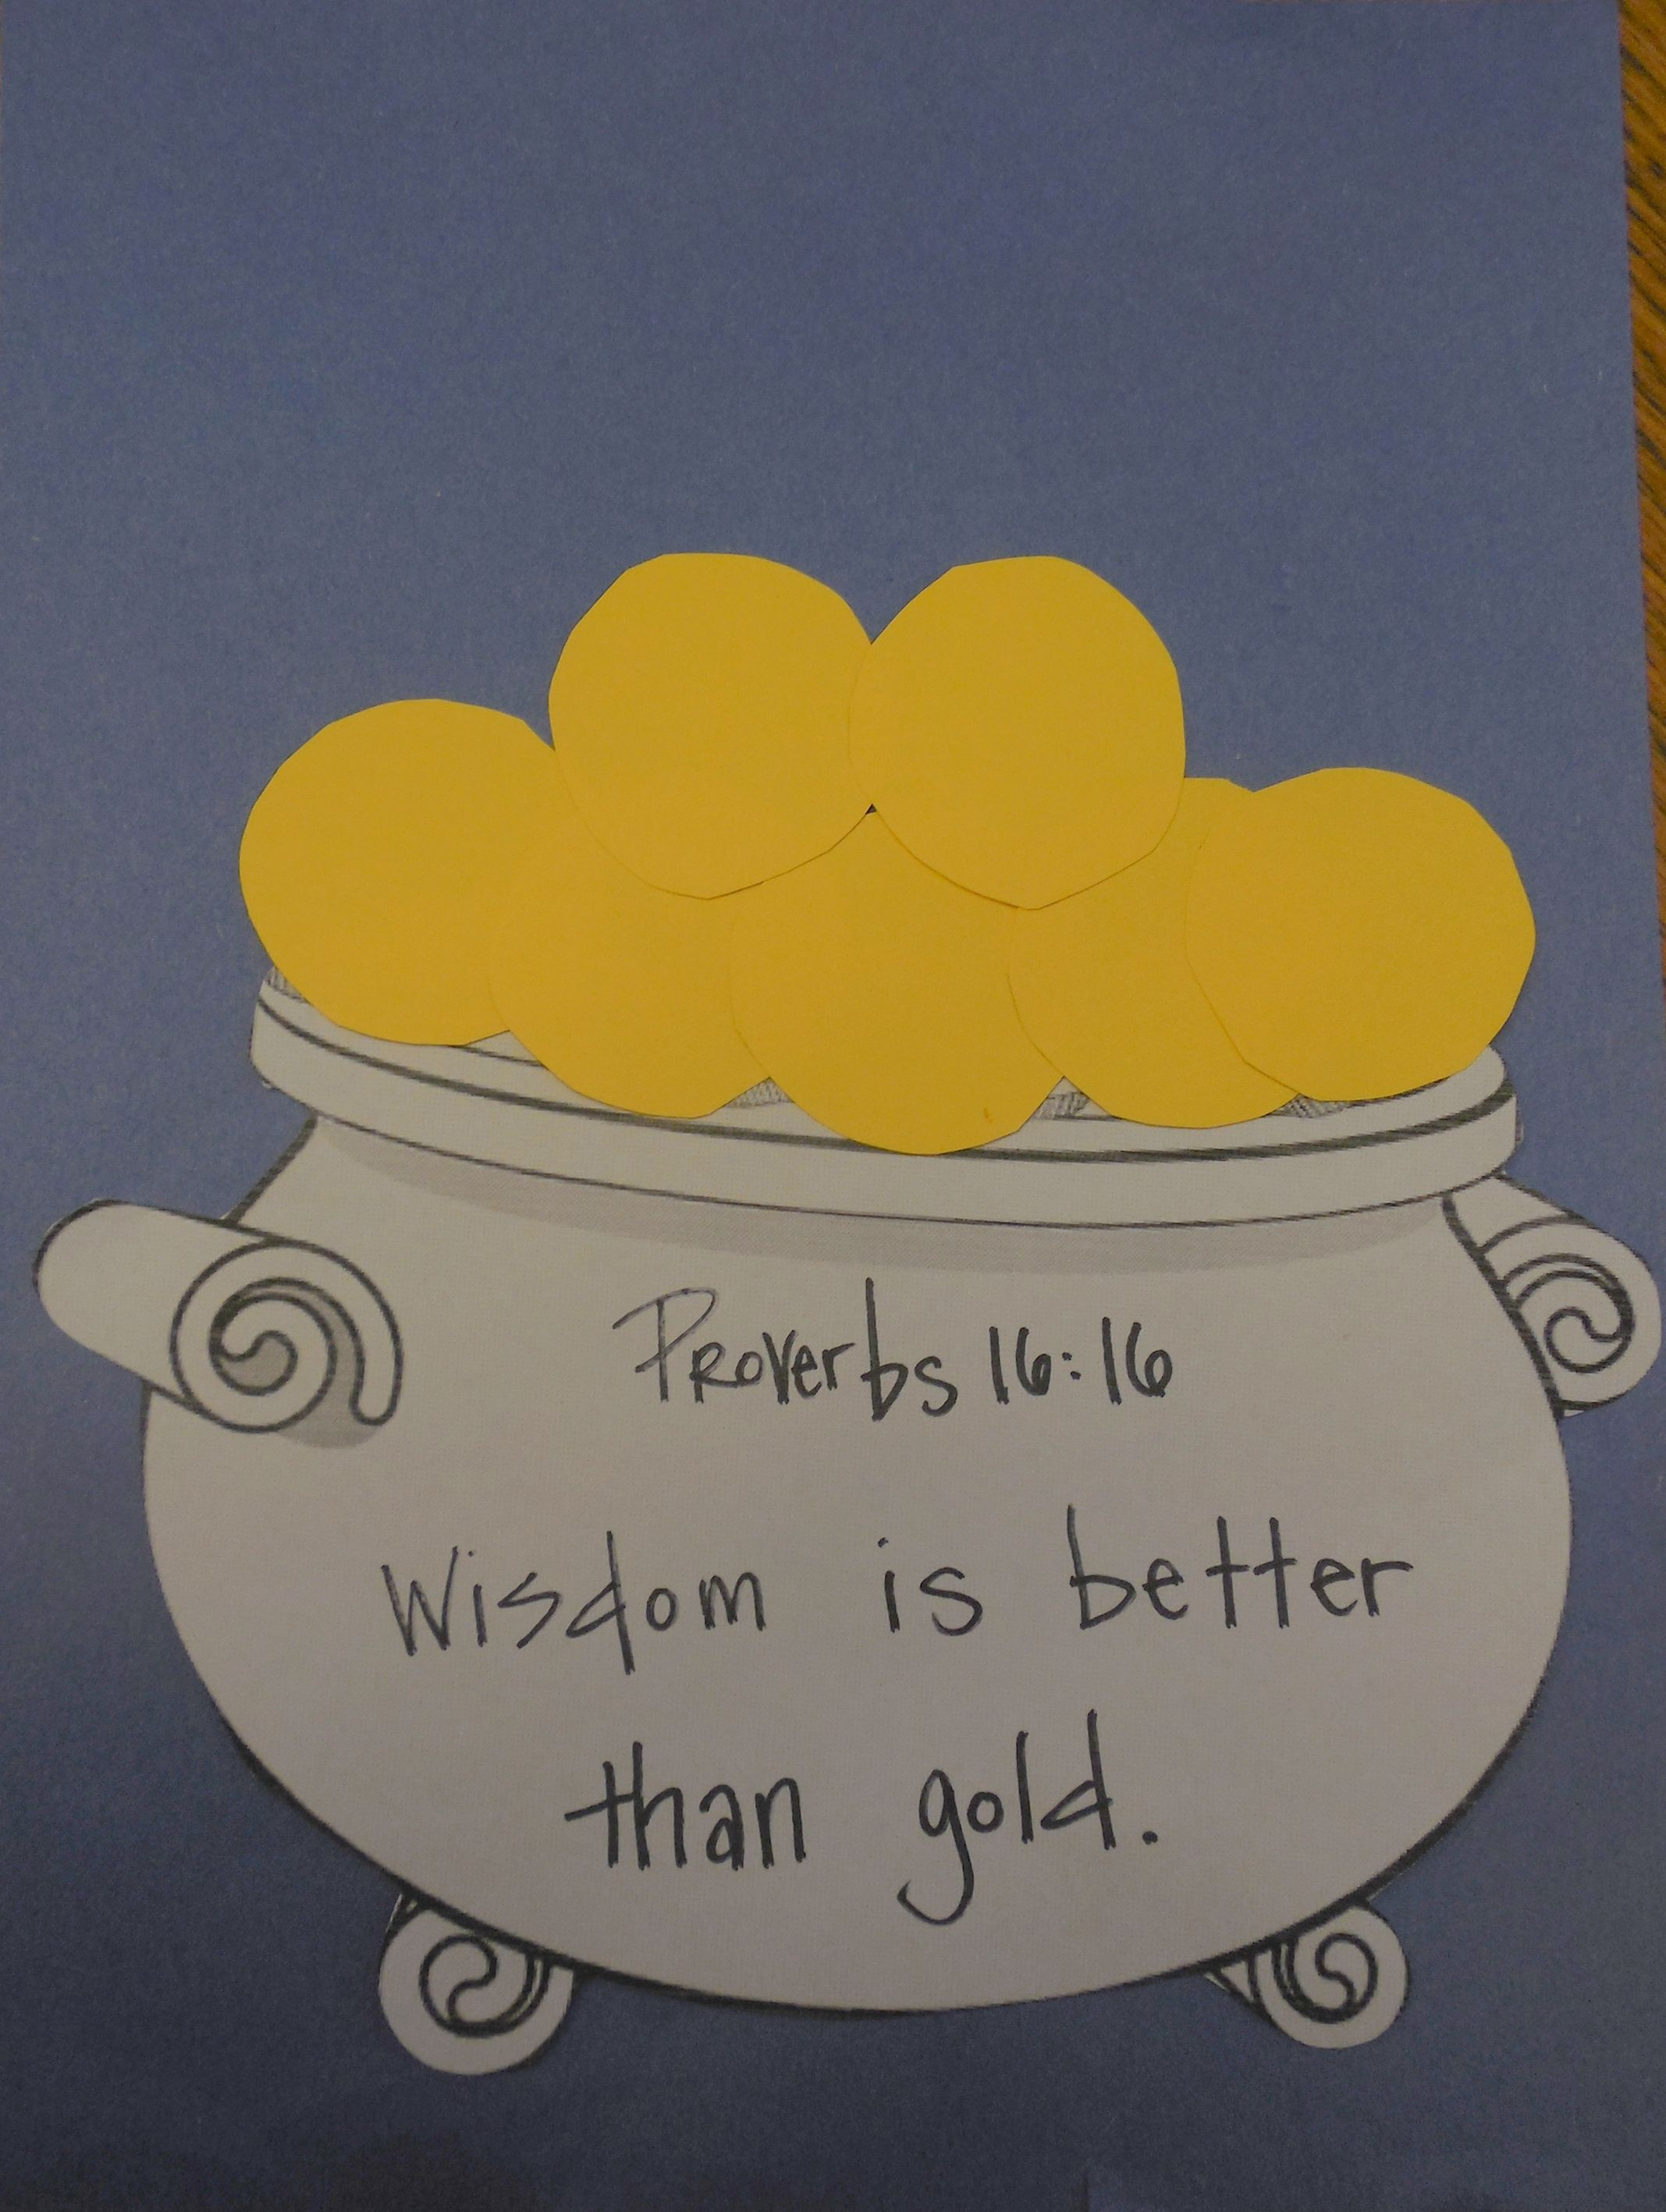 Proverbs 16:16: Wisdom is better than Gold | Fun St  Patrick's Day